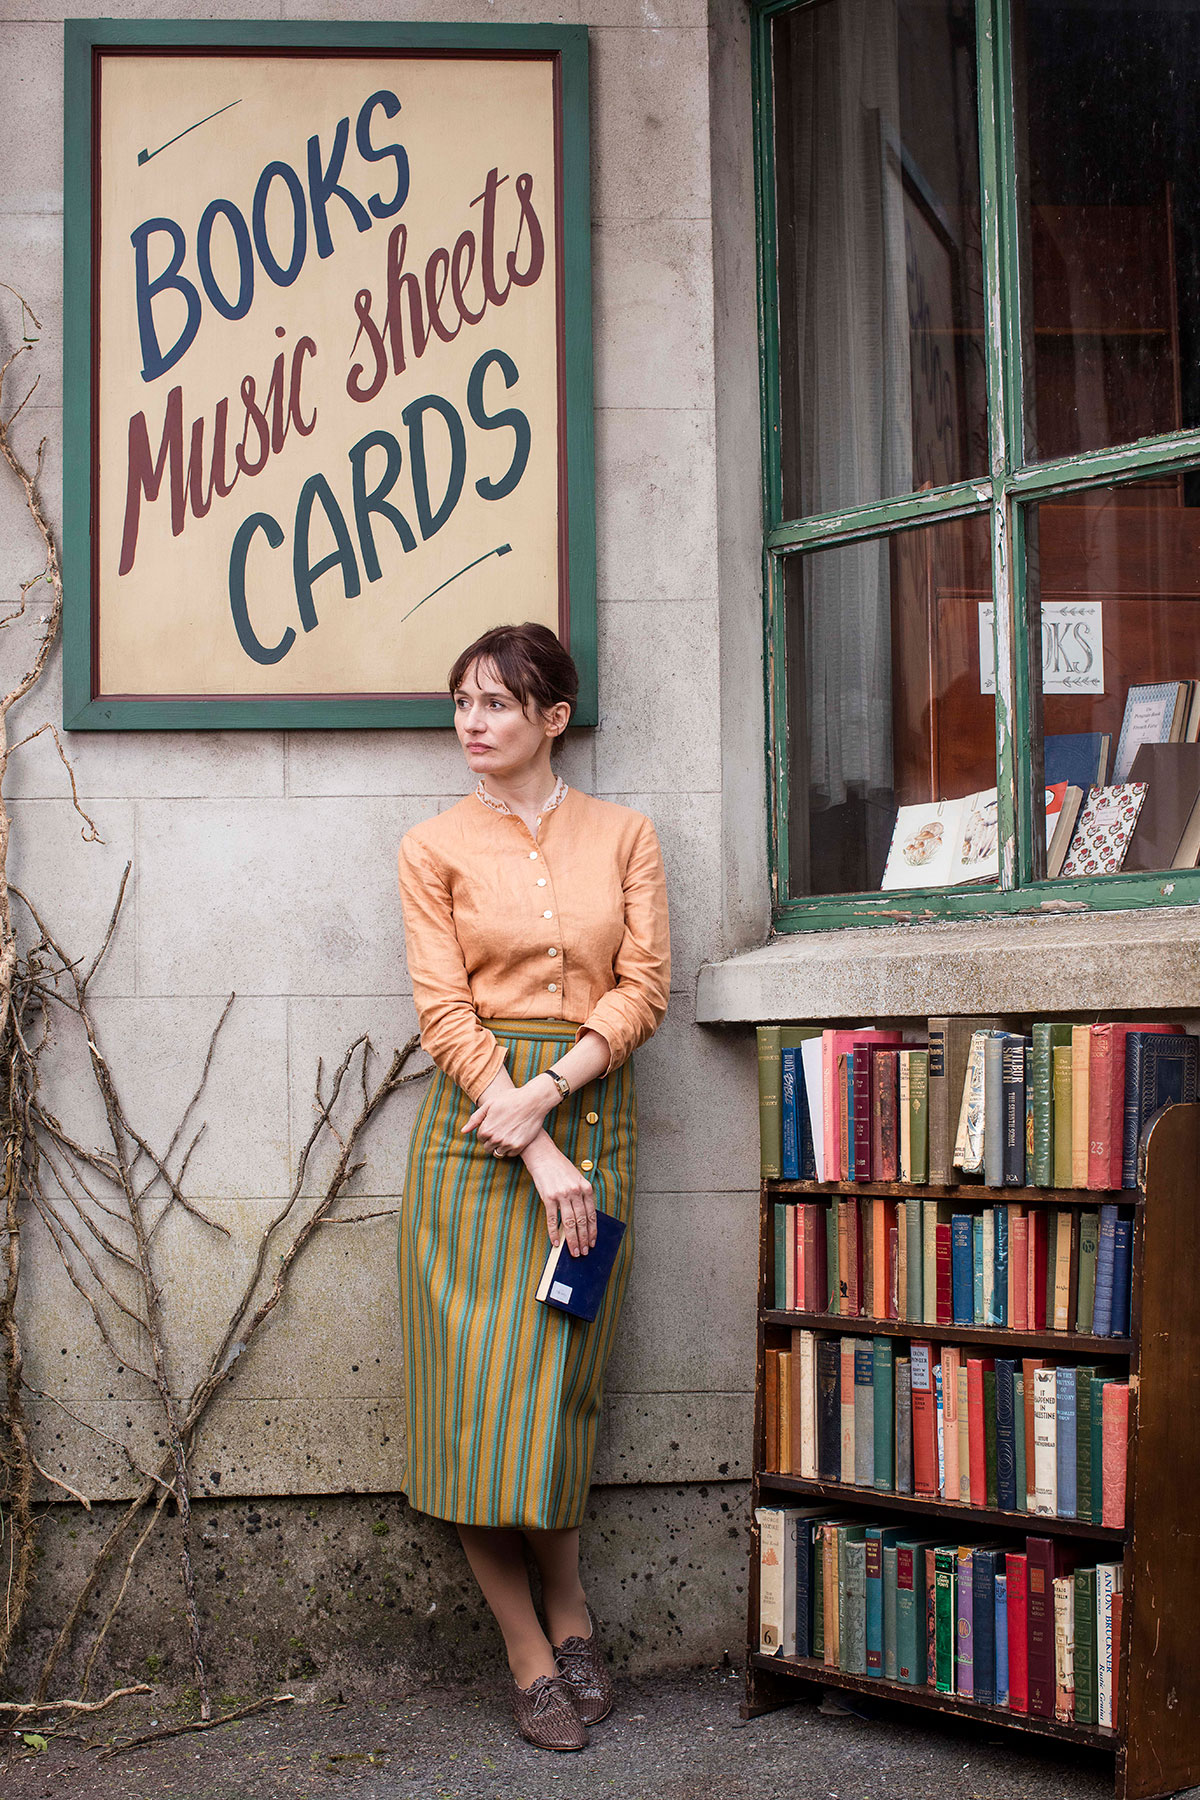 Actress Emily Mortimer stands outside her bookstore in The Bookshop movie